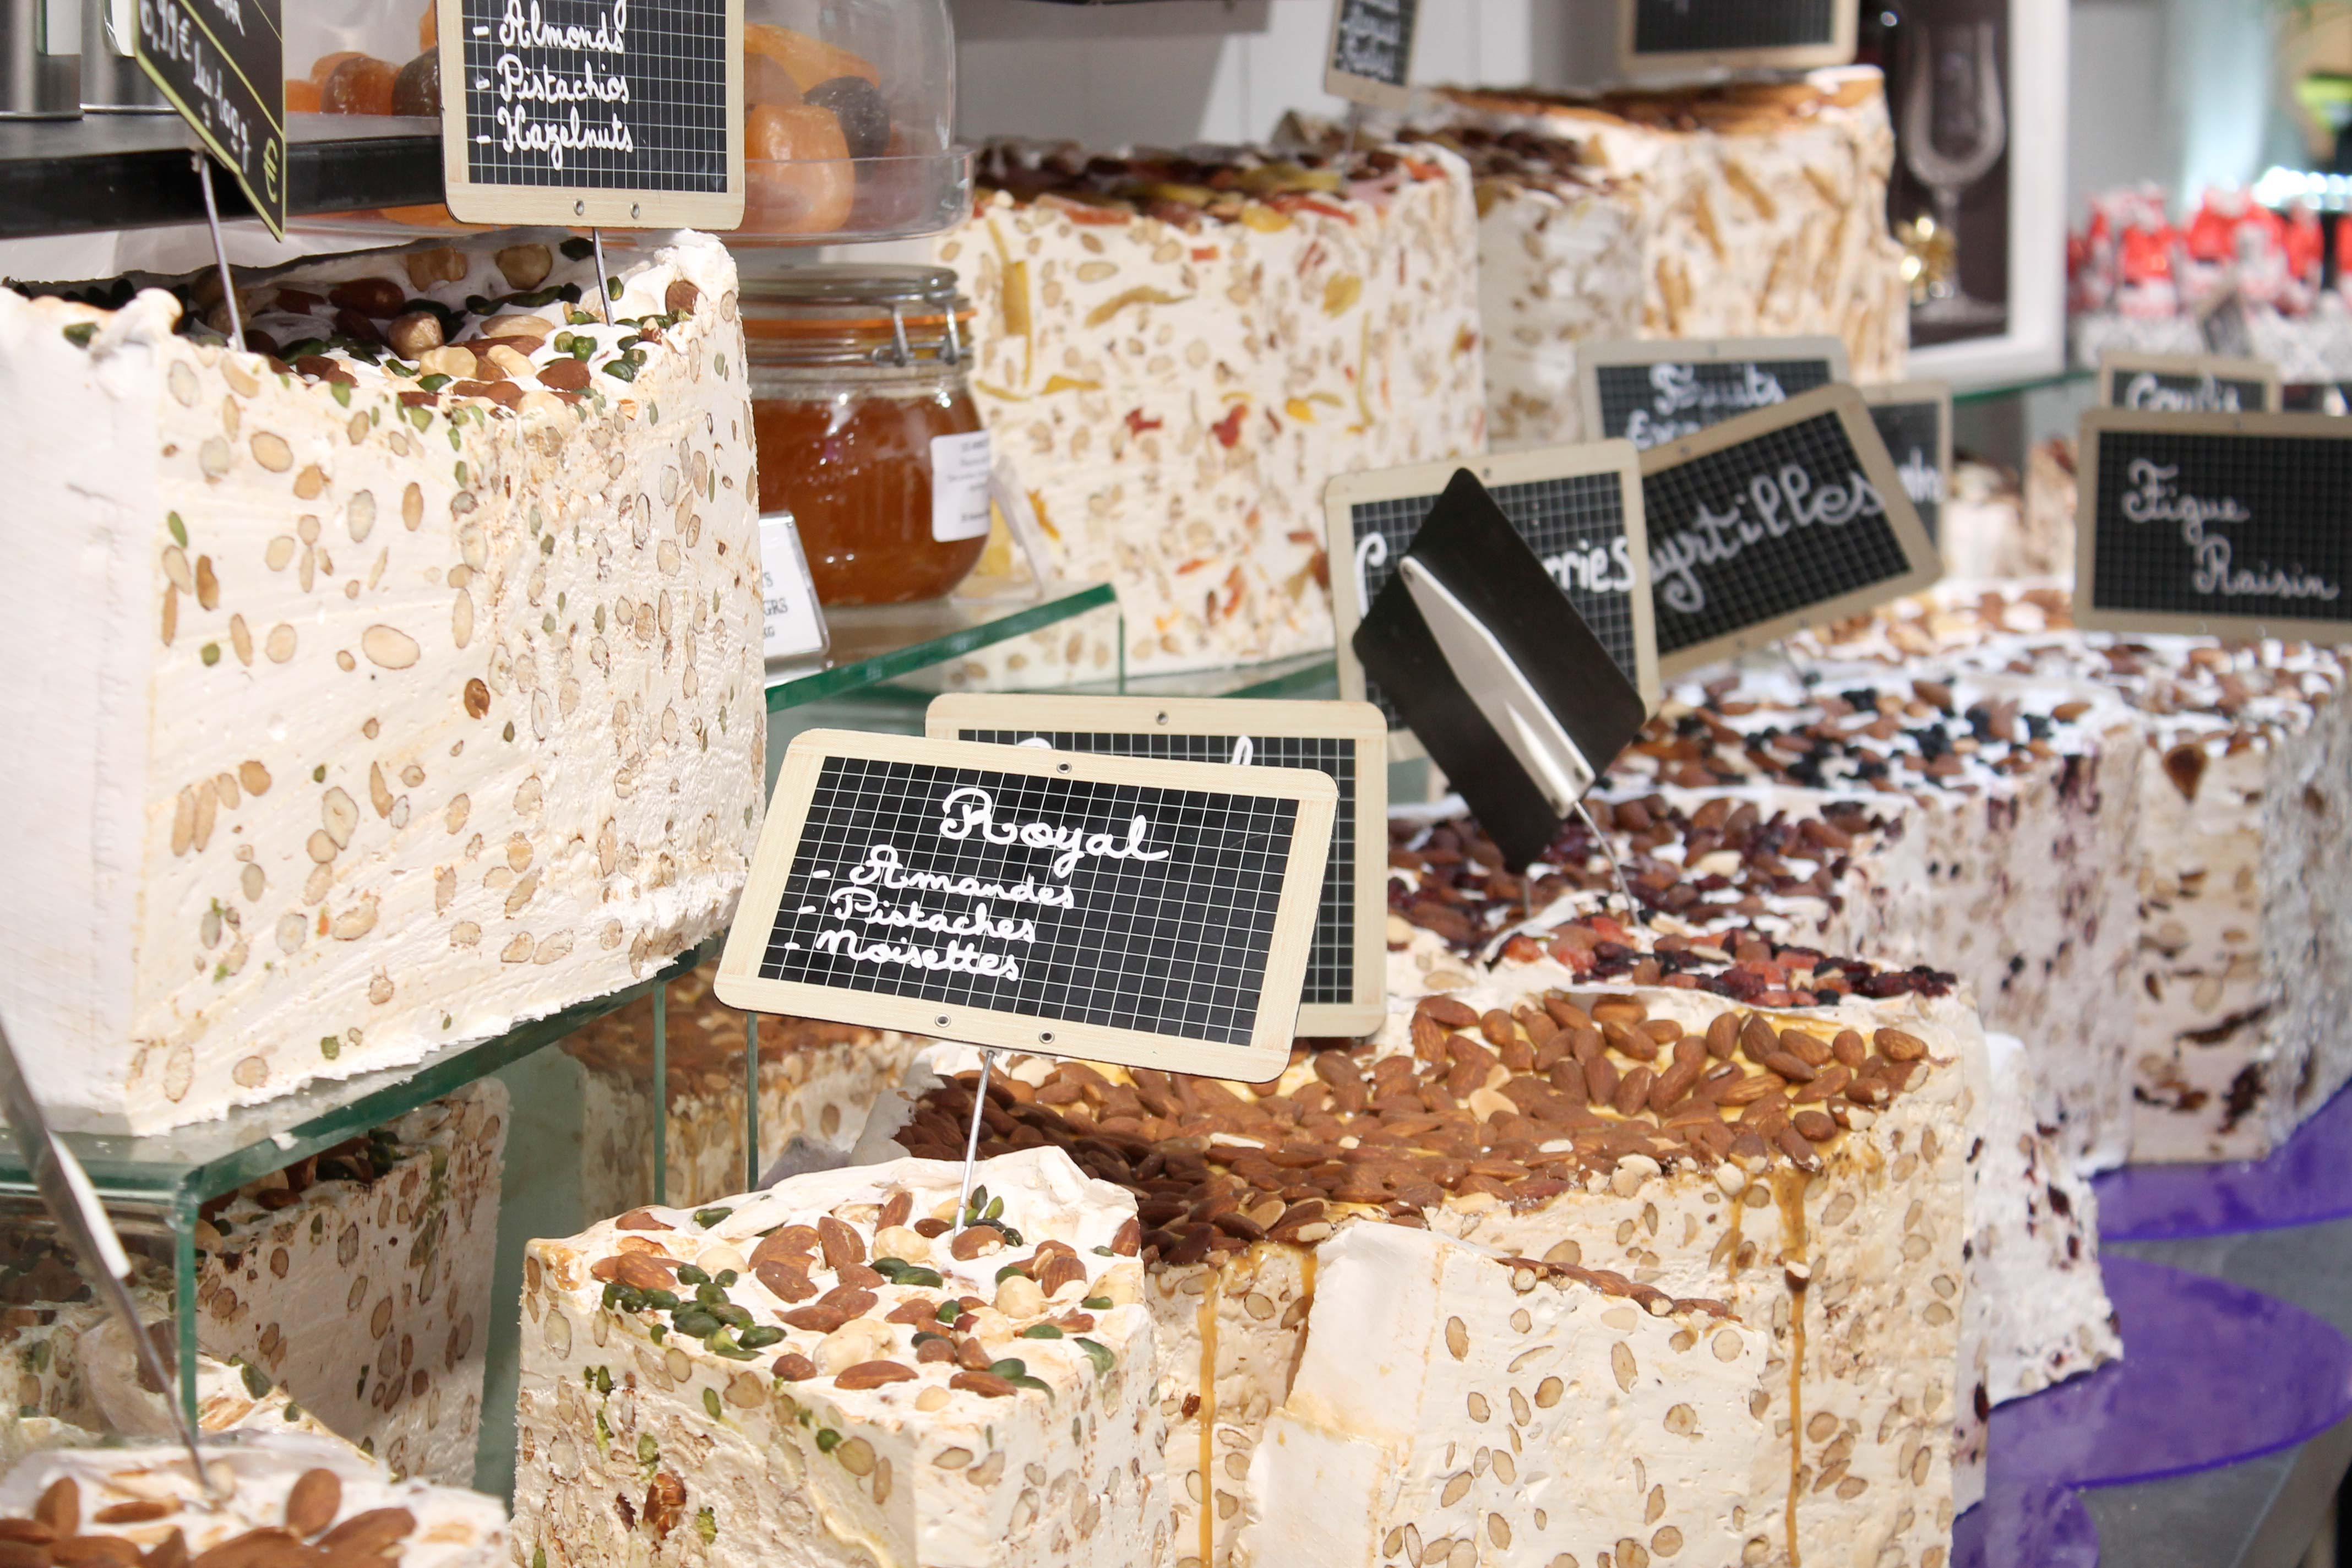 Shore excursion, nougat stall, Aix en Provence